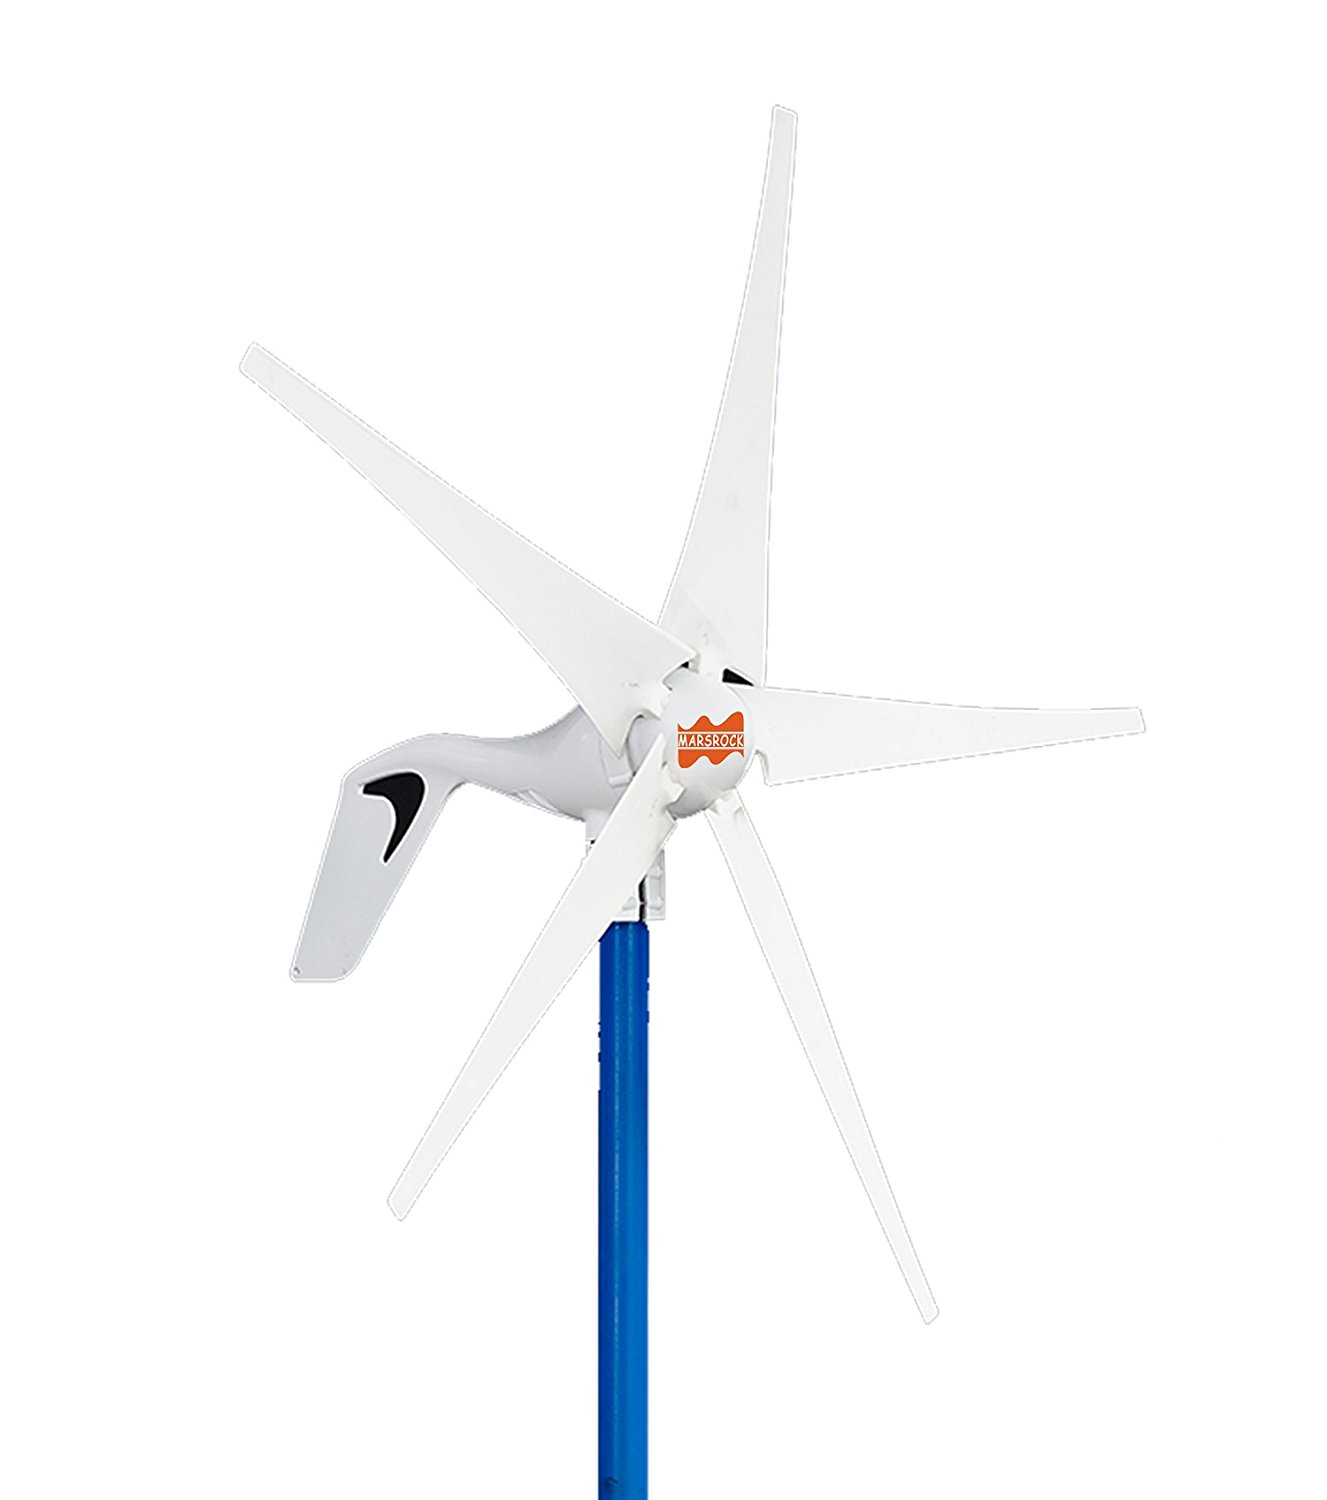 MarsRock Mini Wind Turbine DC 12V or 24V 5 Blades 400W 300W Wind Turbine Generator with built-in Rectifier module , 2M/S Start Wind Speed (400W)